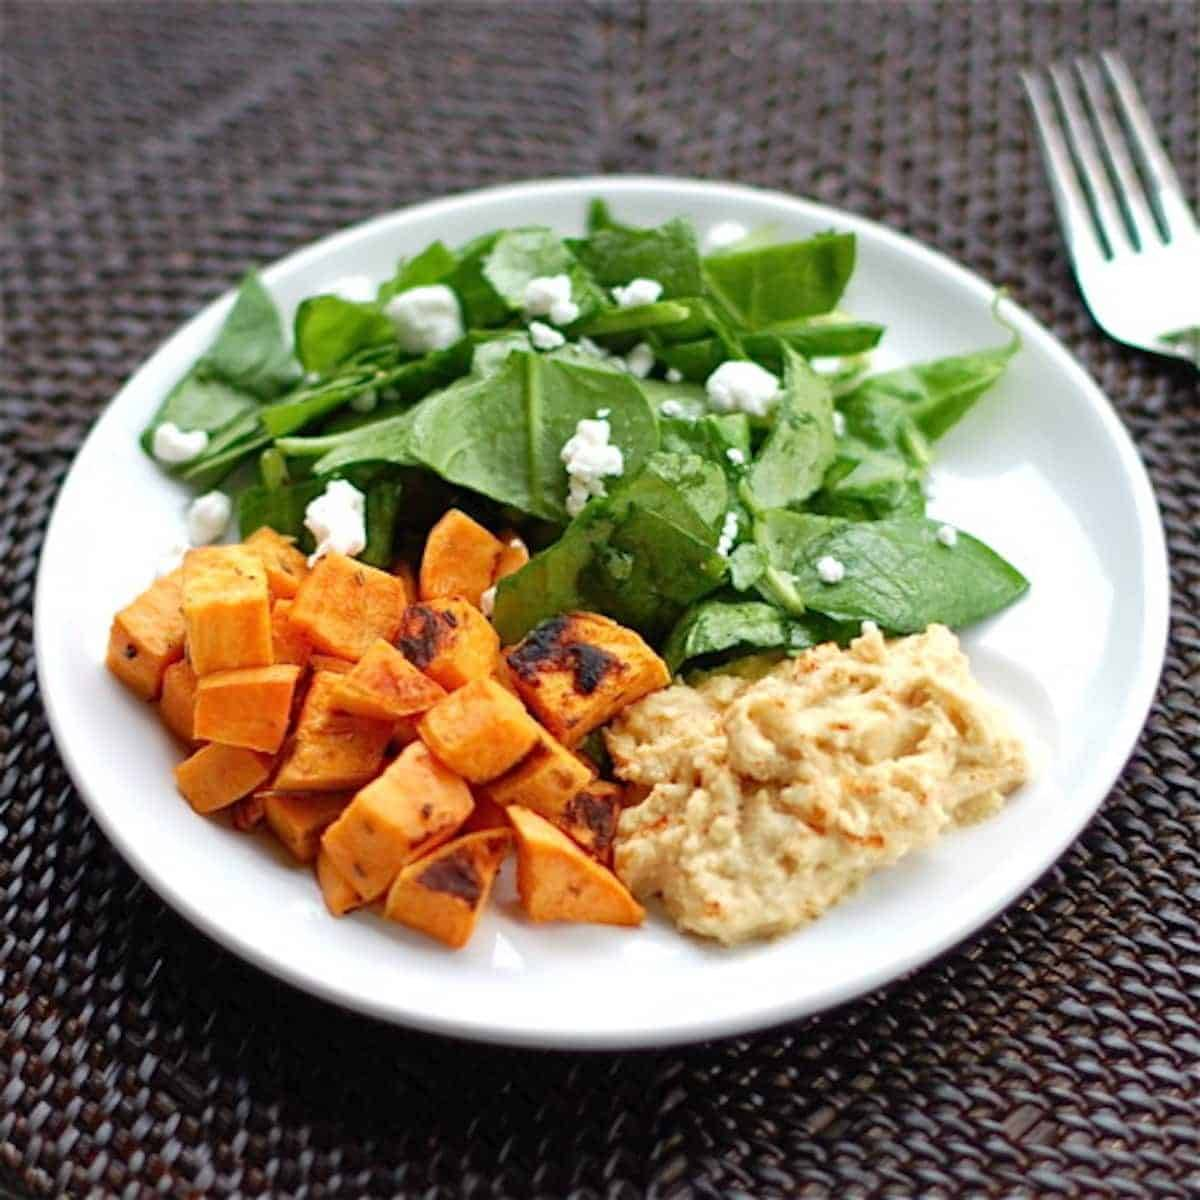 Roasted sweet potatoes with a side of hummus and a spinach salad on a white plate with a fork.